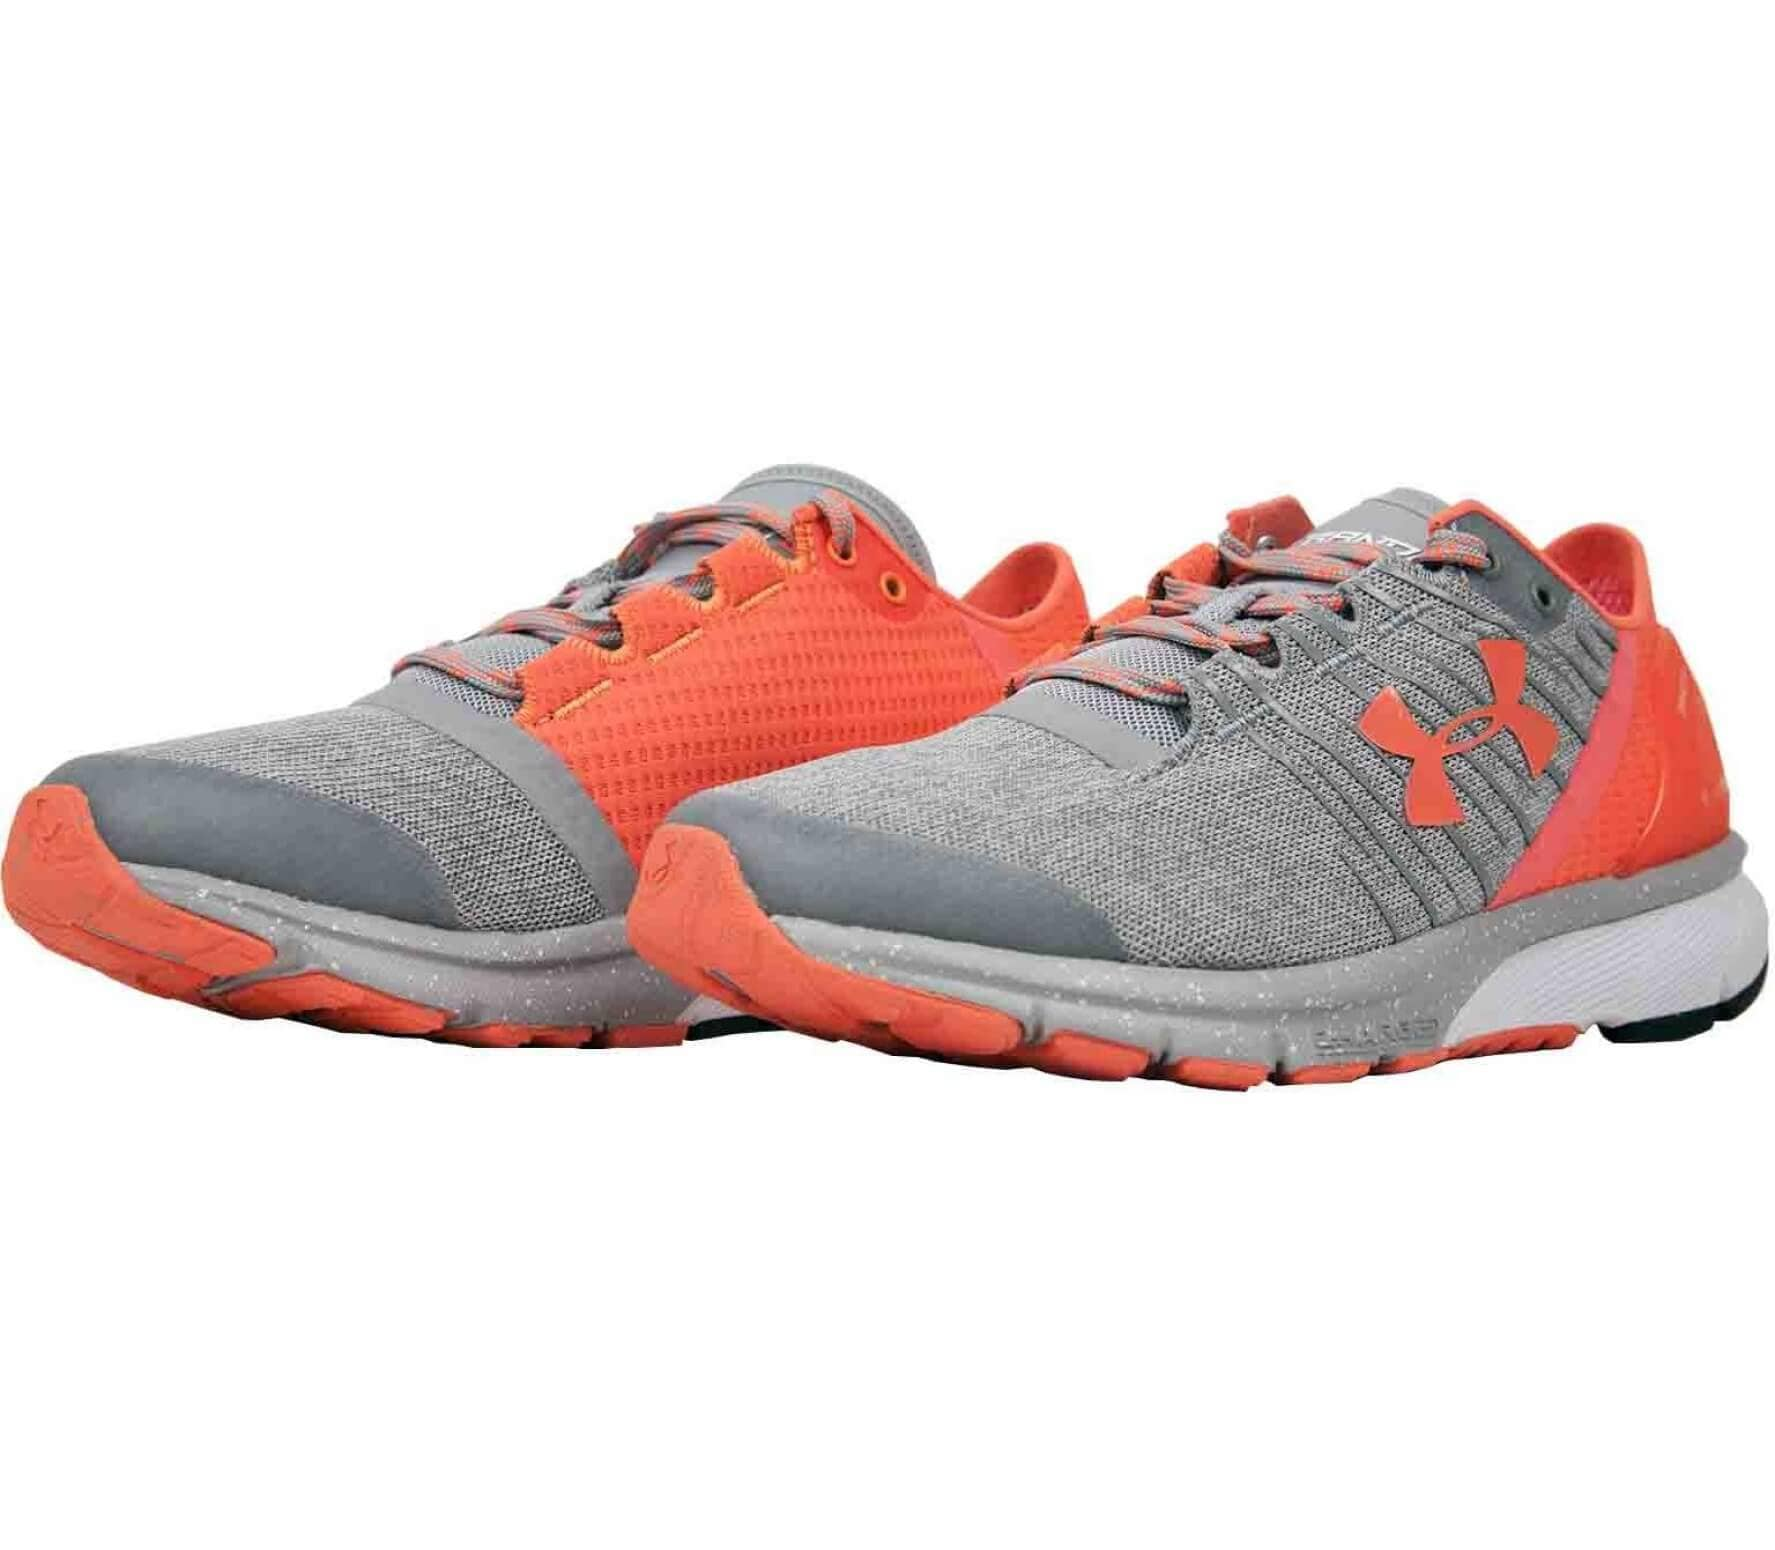 timeless design 1900f d73db Under Armour Charged Bandit 2 Women silver